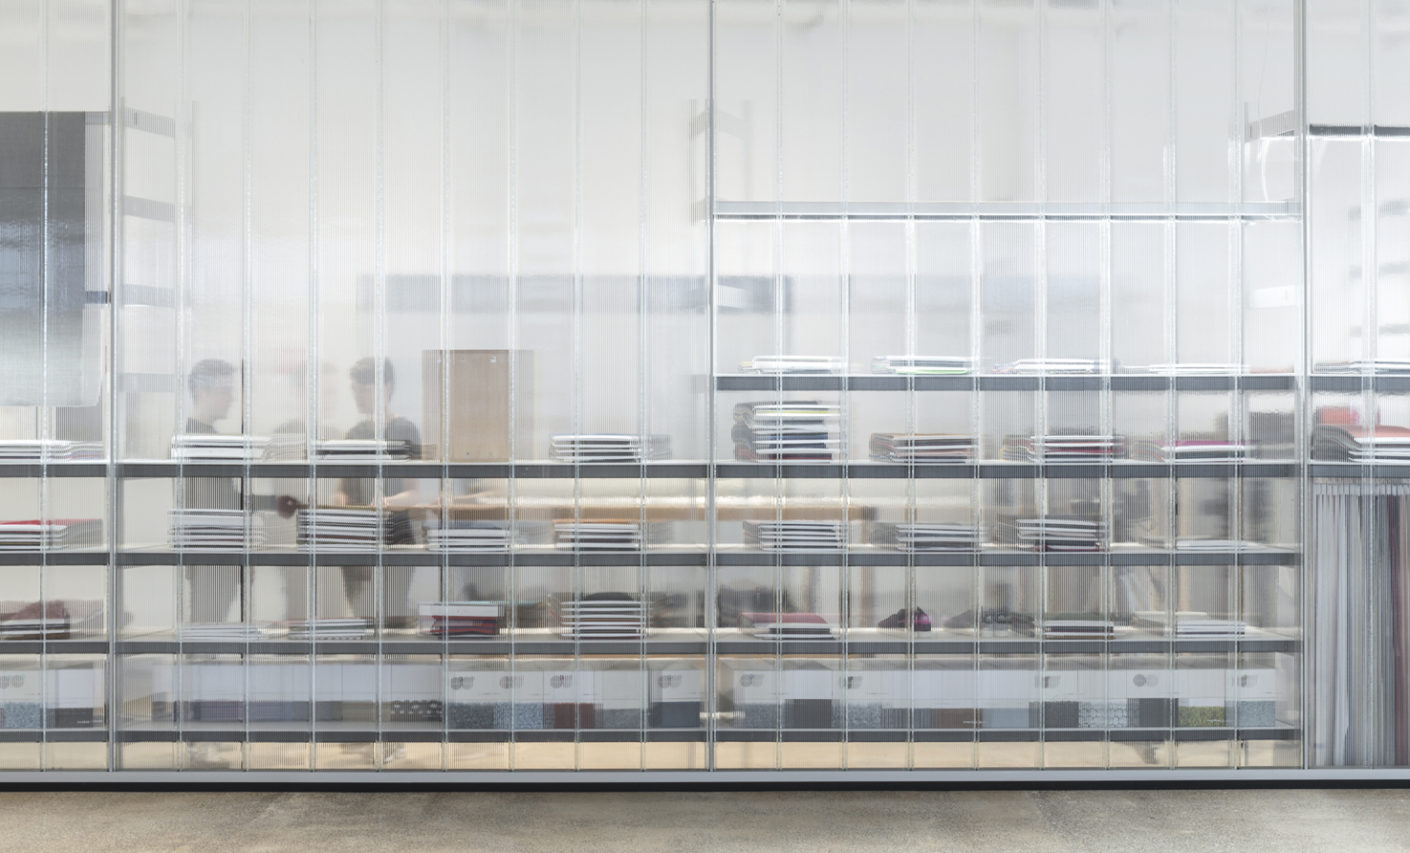 The transparent glass screens effectively separate the offices from the warehouse spaces and presentation areas for products.